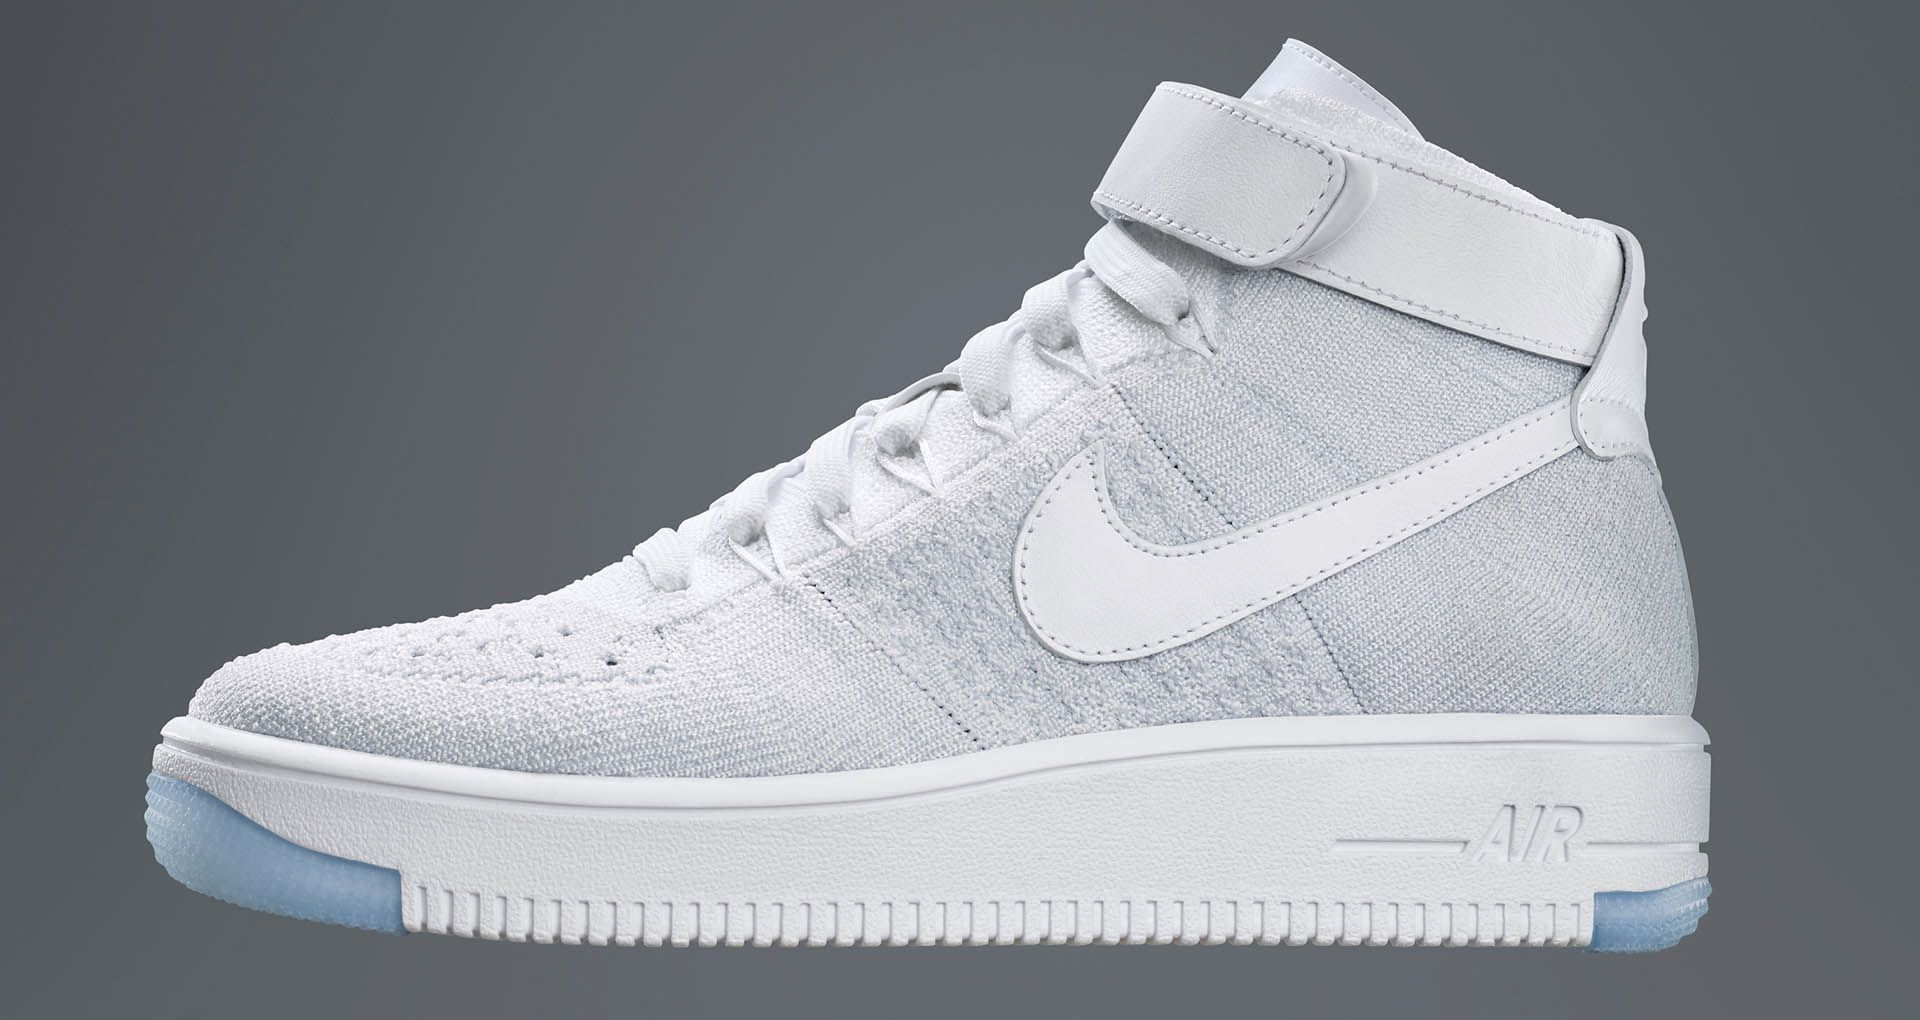 Nike Air Force 1 Ultra Flyknit Low White Ice